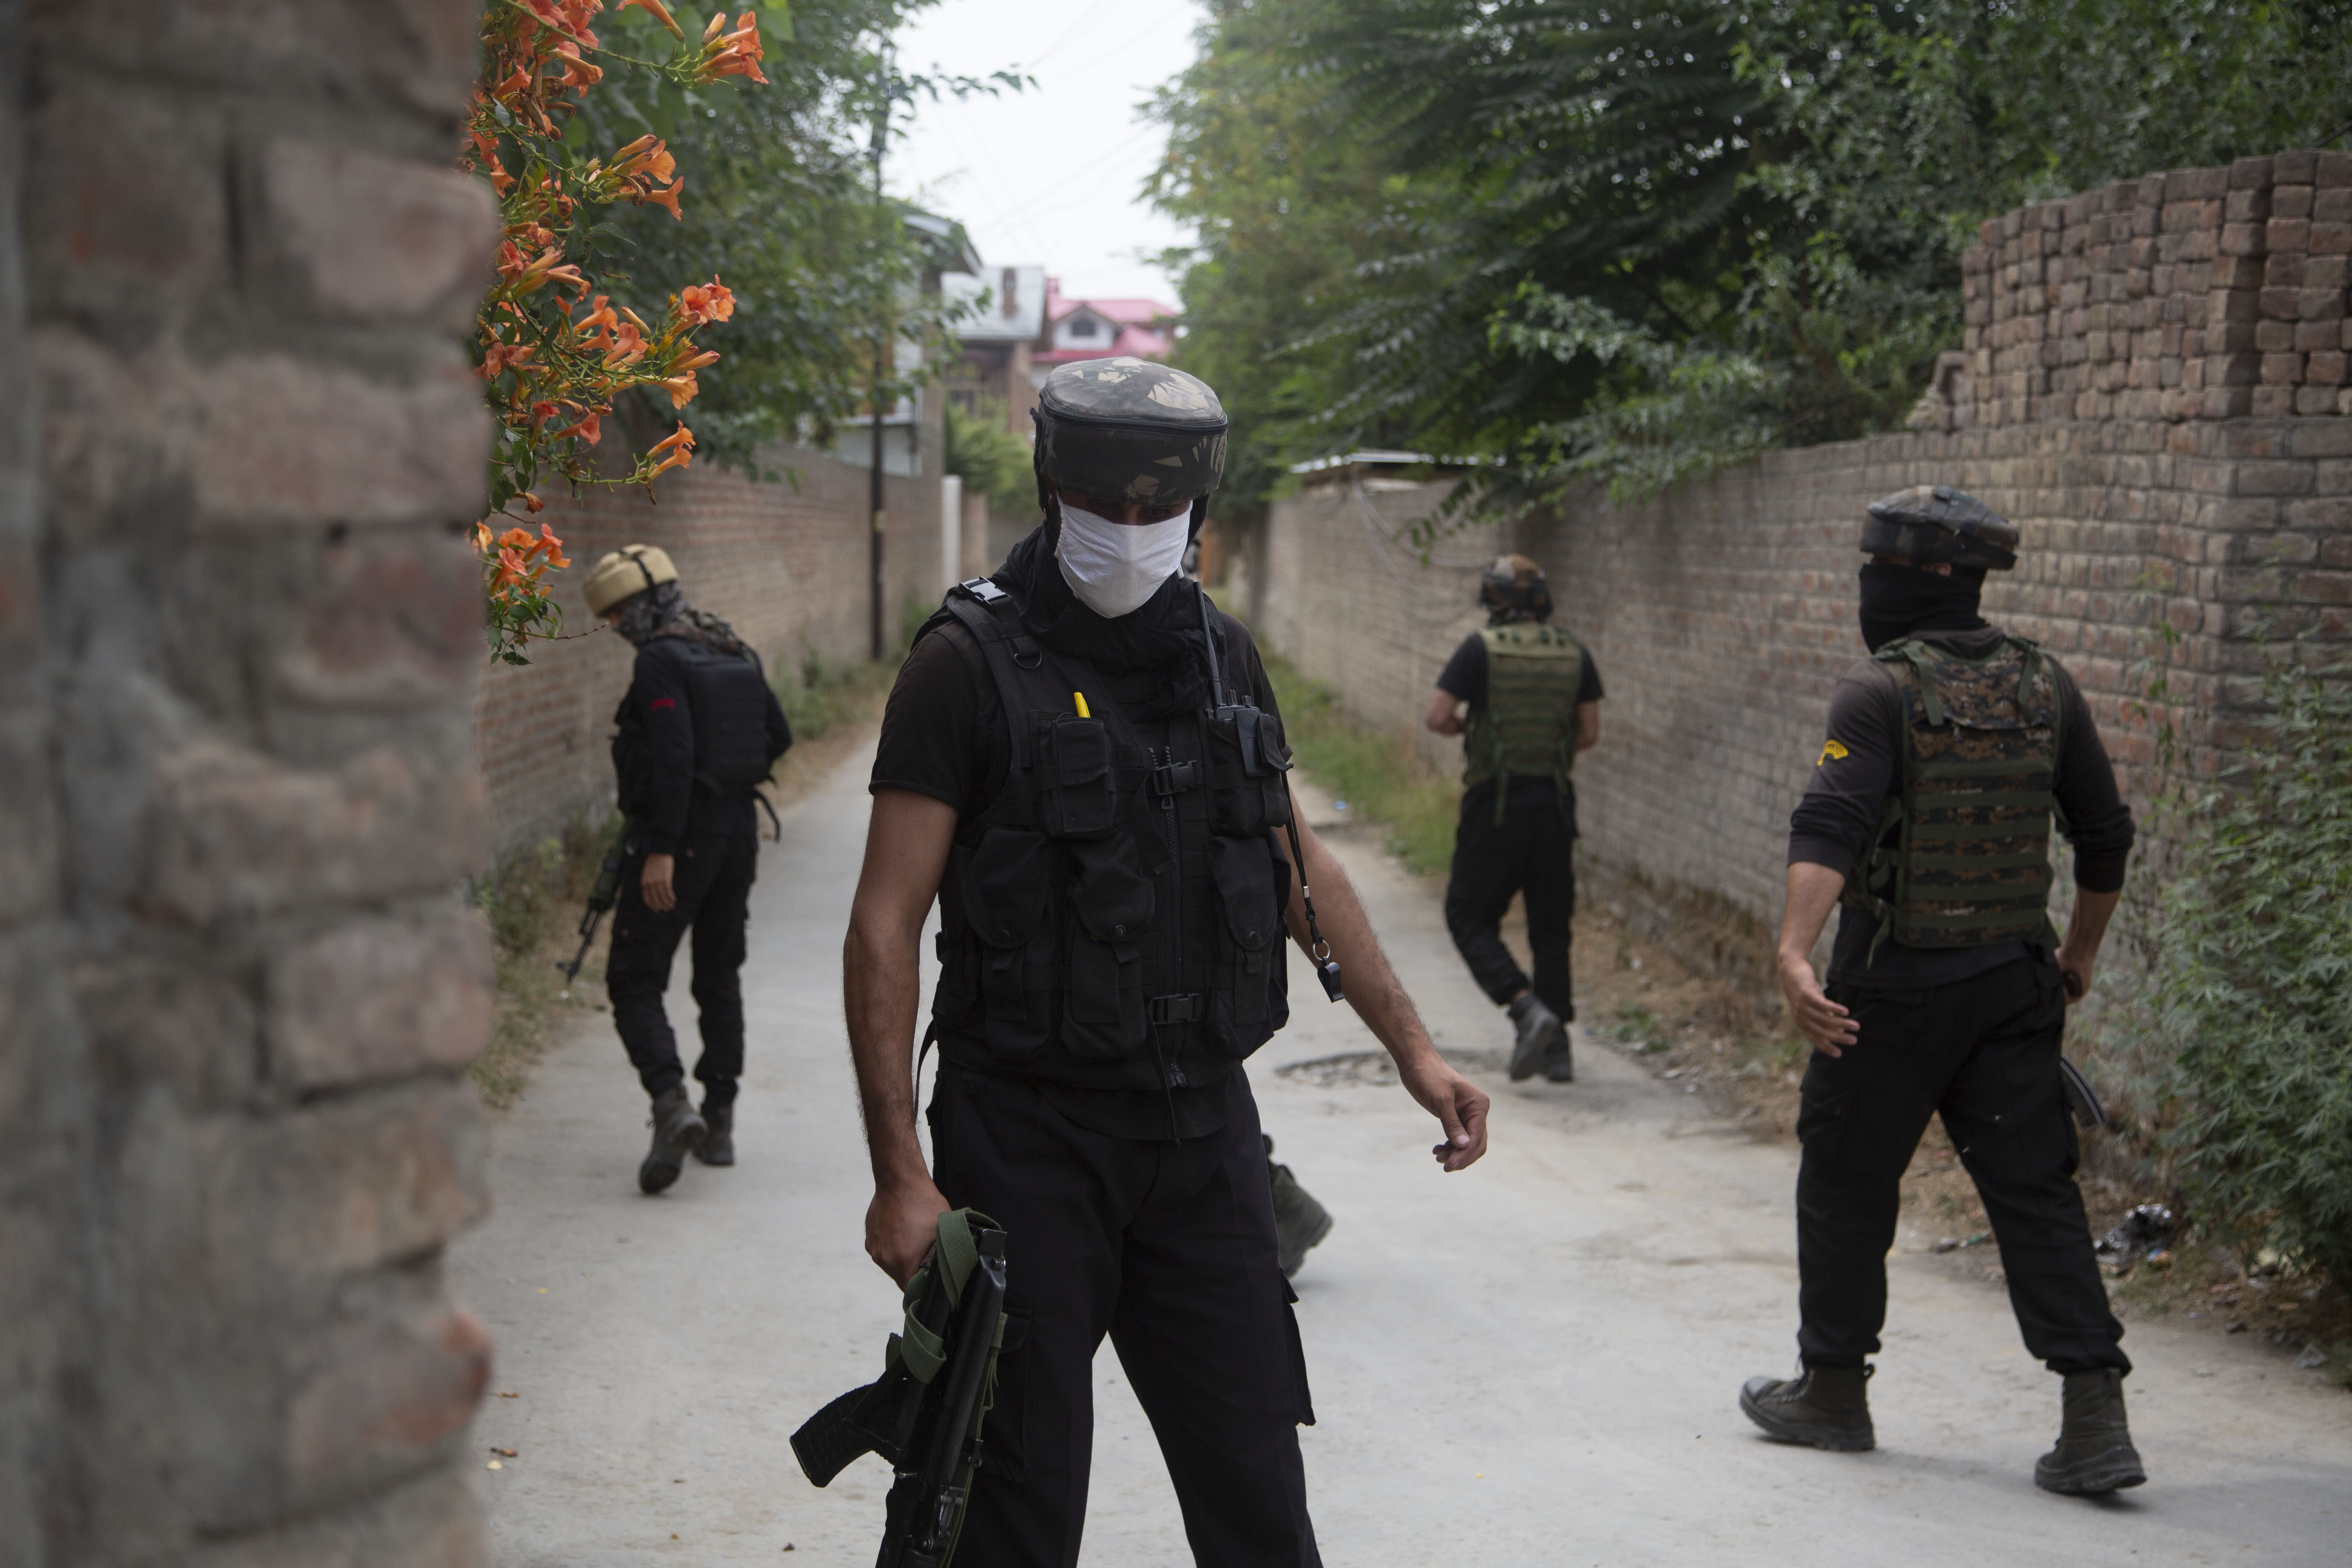 Members of special Operations Group (SOG) of Jammu and Kashmir police examine at the site of an attack on policemen on the outskirts of Srinagar, Indian controlled Kashmir, Friday, Aug. 14, 2020. Anti-India rebels in Indian-controlled Kashmir Friday attacked a police party in the disputed region's main city, killing two police officials and injuring another, police said. (AP Photo/Mukhtar Khan)